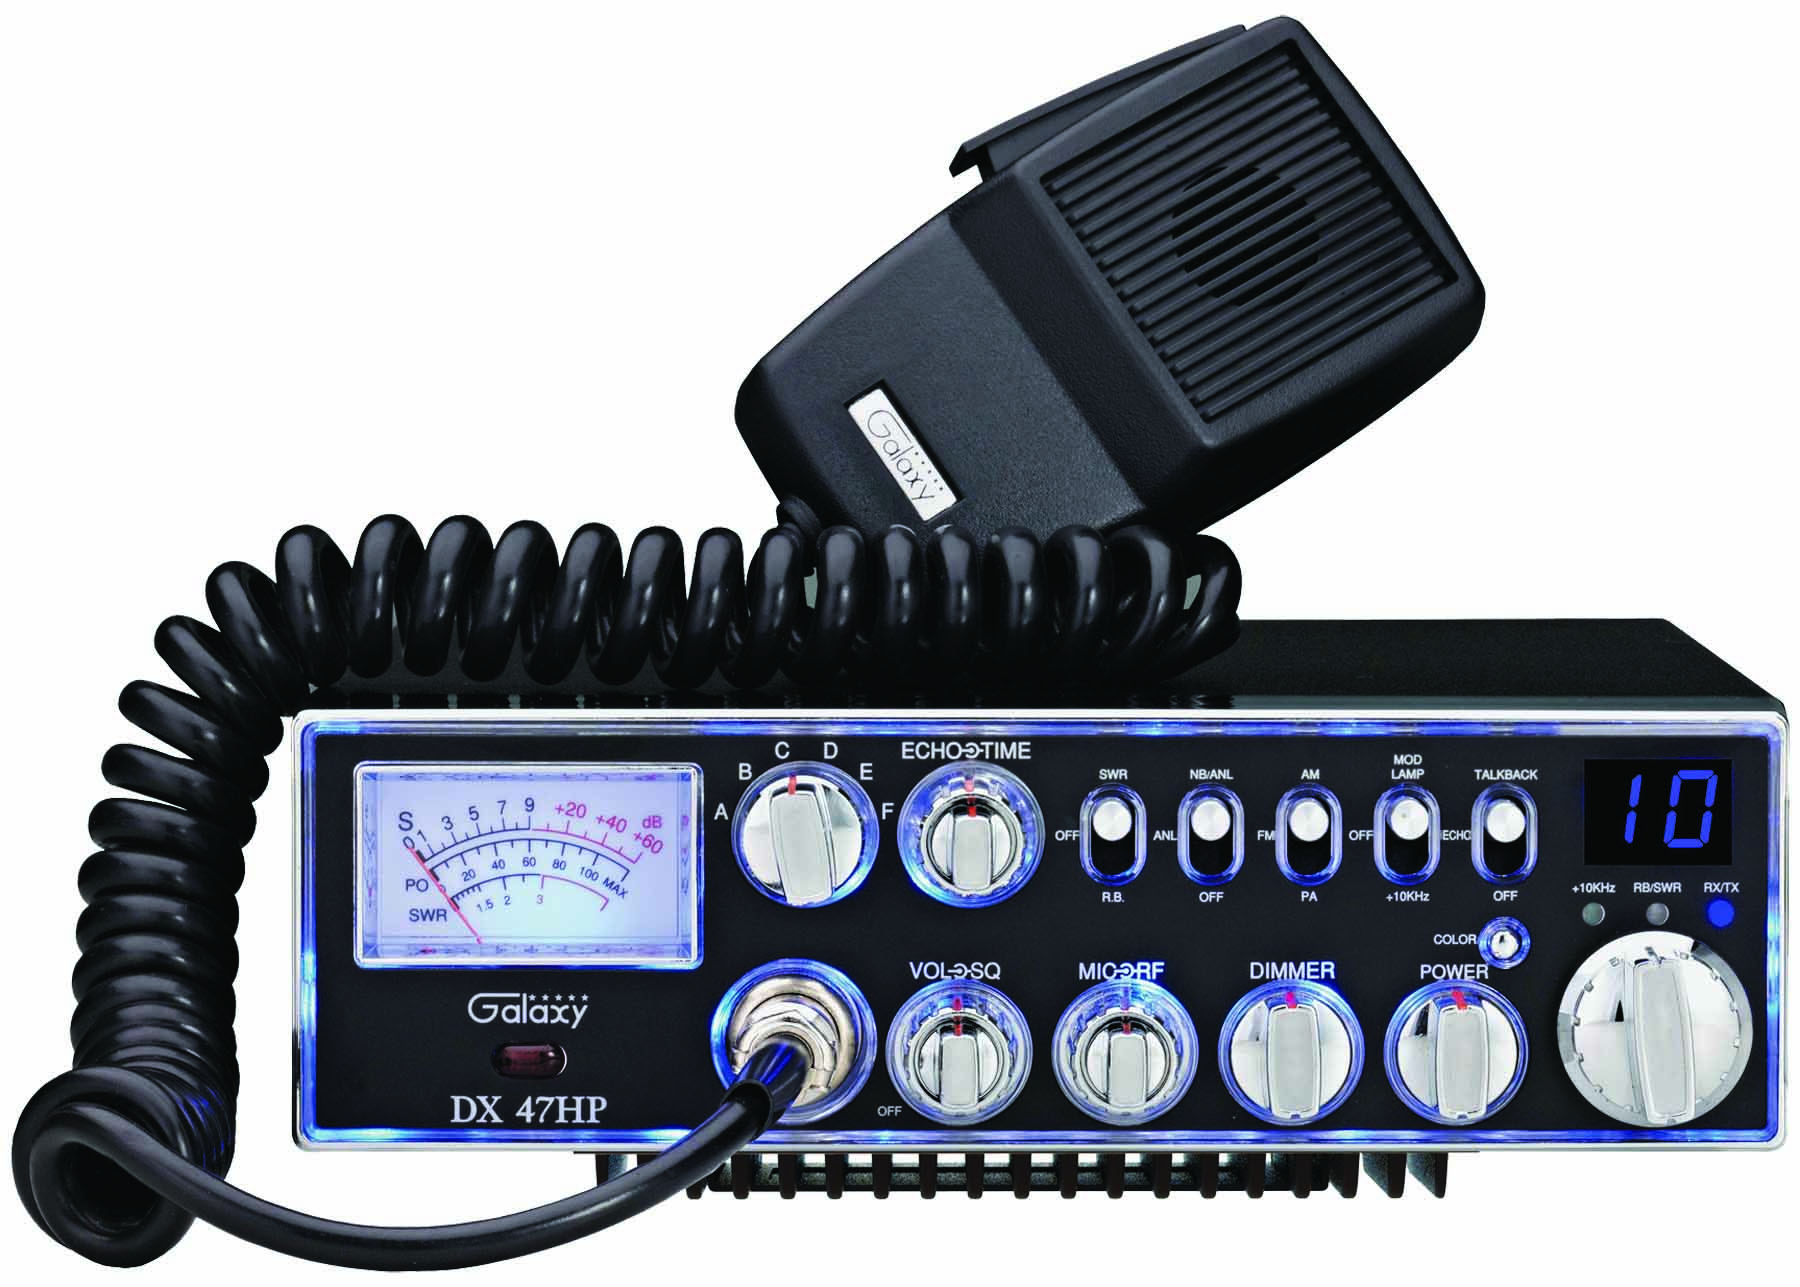 DX47HP - Galaxy 10 Meter Mobile Radio